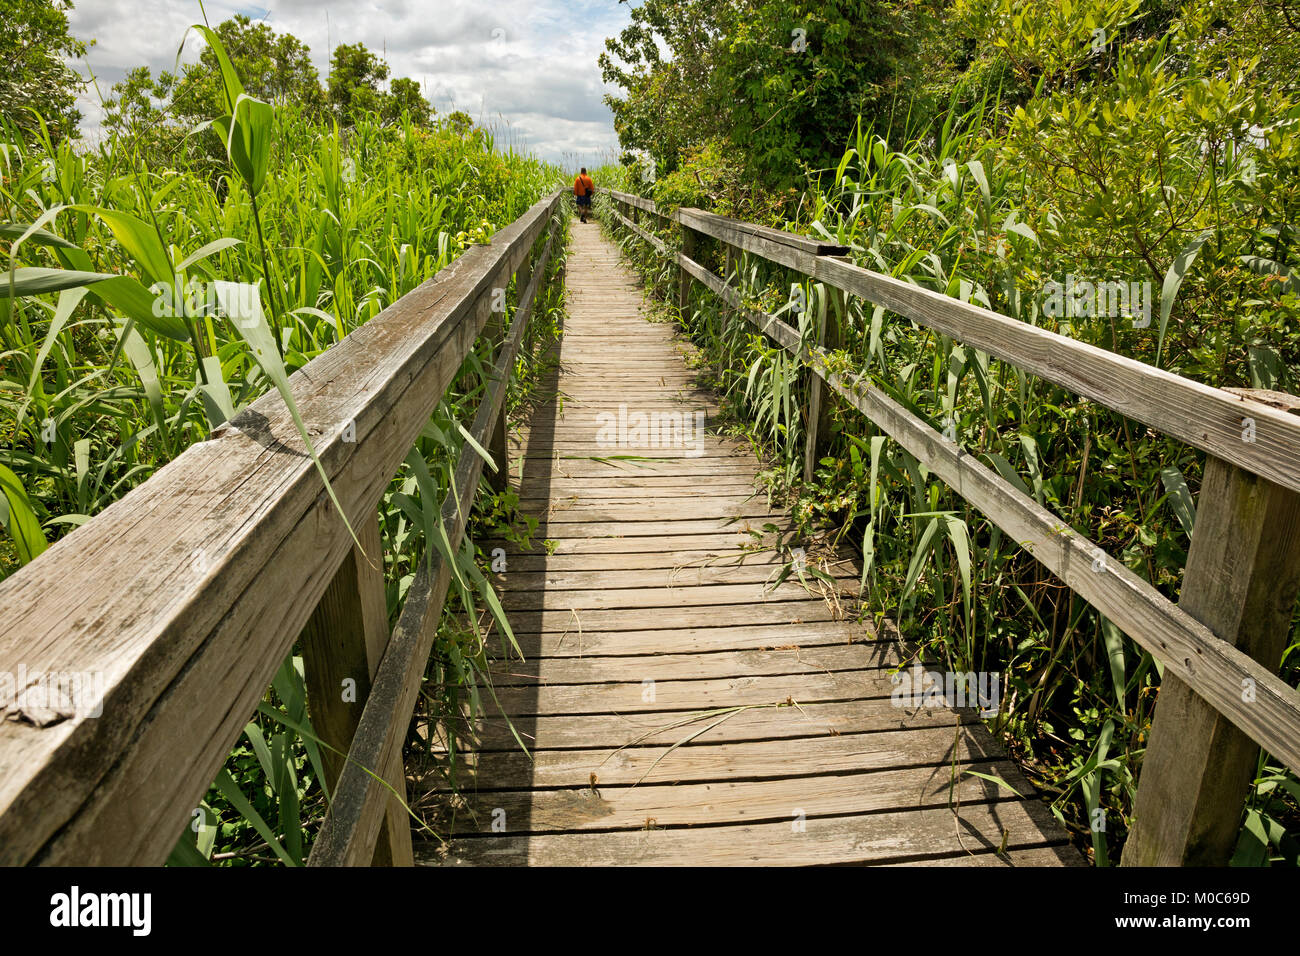 NC01371-00...NORTH CAROLINA - Boardwalk trail almost over grown with Common Reed as it heads through the salt marsh - Stock Image